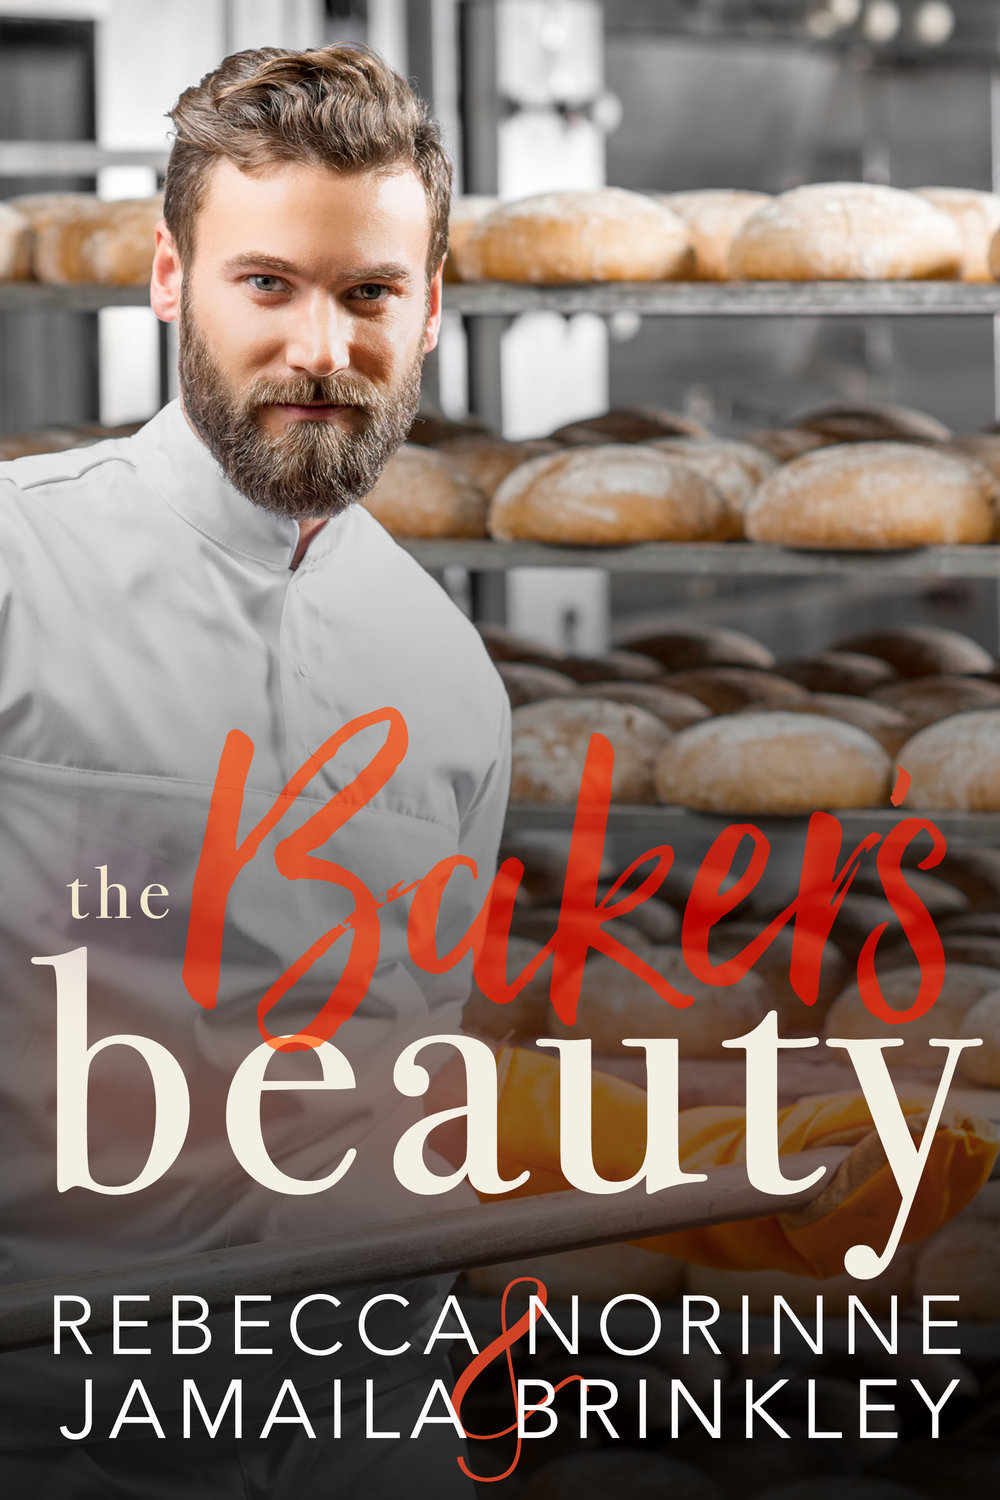 THE BAKER'S BEAUTY - After tragedy struck, Sean Amory left life as a record executive in LA to go back to his roots. He's come home to River Hill to work in his family's bakery, reliving his youth while he decides what to do with his life. Somehow, the warm ovens and fresh dough are soothing his raw edges – and the gorgeous woman he sees jogging past every morning as he opens up the shop is having another effect entirely.Jess Estes-Moore's former life as a beauty queen led to her current gig as a lifestyle consultant for every local TV station in northern California – but it also means she hasn't eaten bread since she was fourteen. But smelling the stuff won't ruin her career, so she makes a point to route her morning run past River Hill's best-smelling site: The Breadery. When she meets the handsome baker inside, sparks fly and cupcakes get… frosted.Jess and Sean are made for each other – but when his past rears its ugly head and her future comes calling, they'll have to work out just what they're ready to give to get everything.